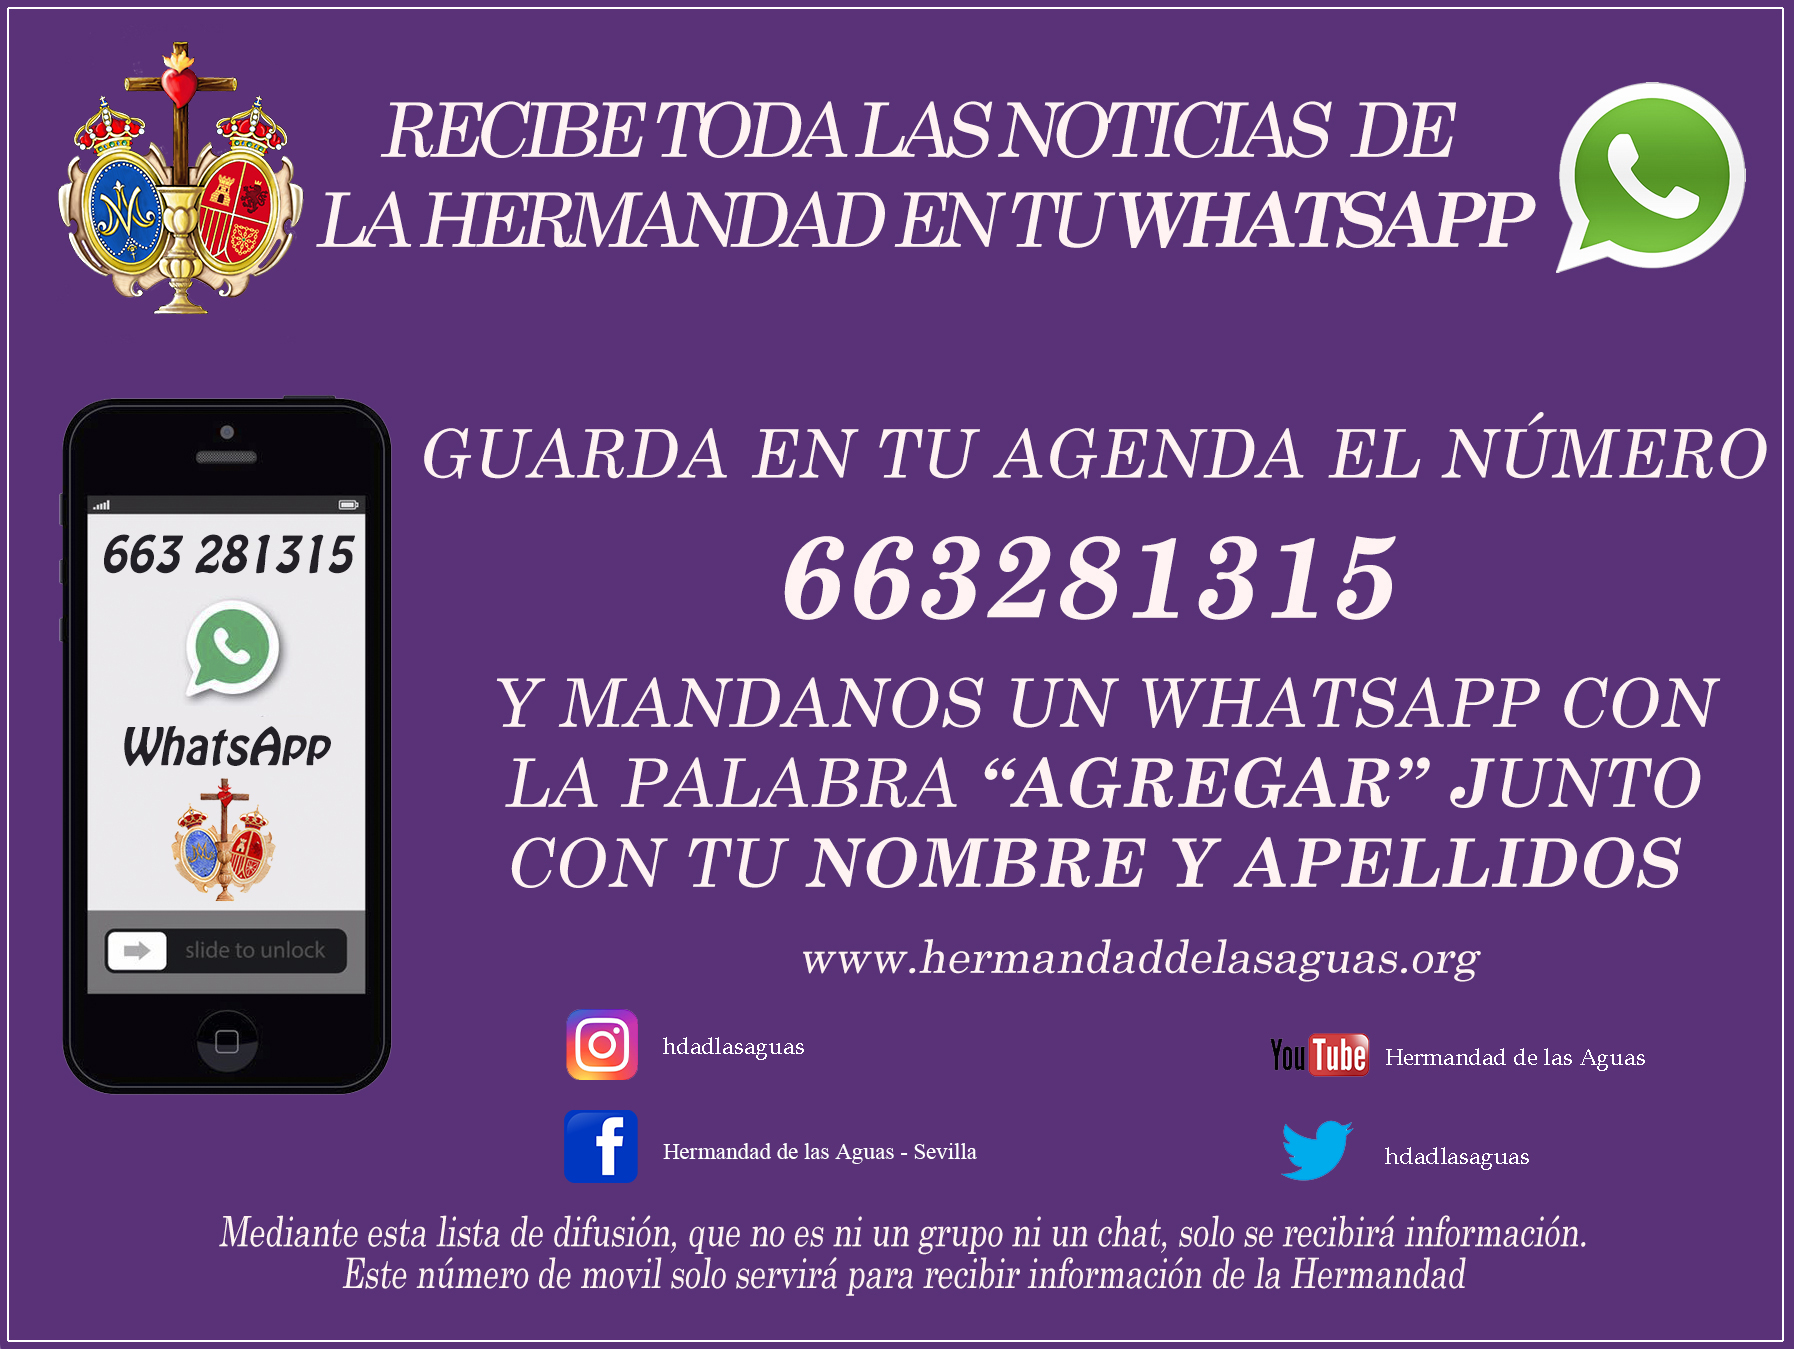 Whatsapp hdad1